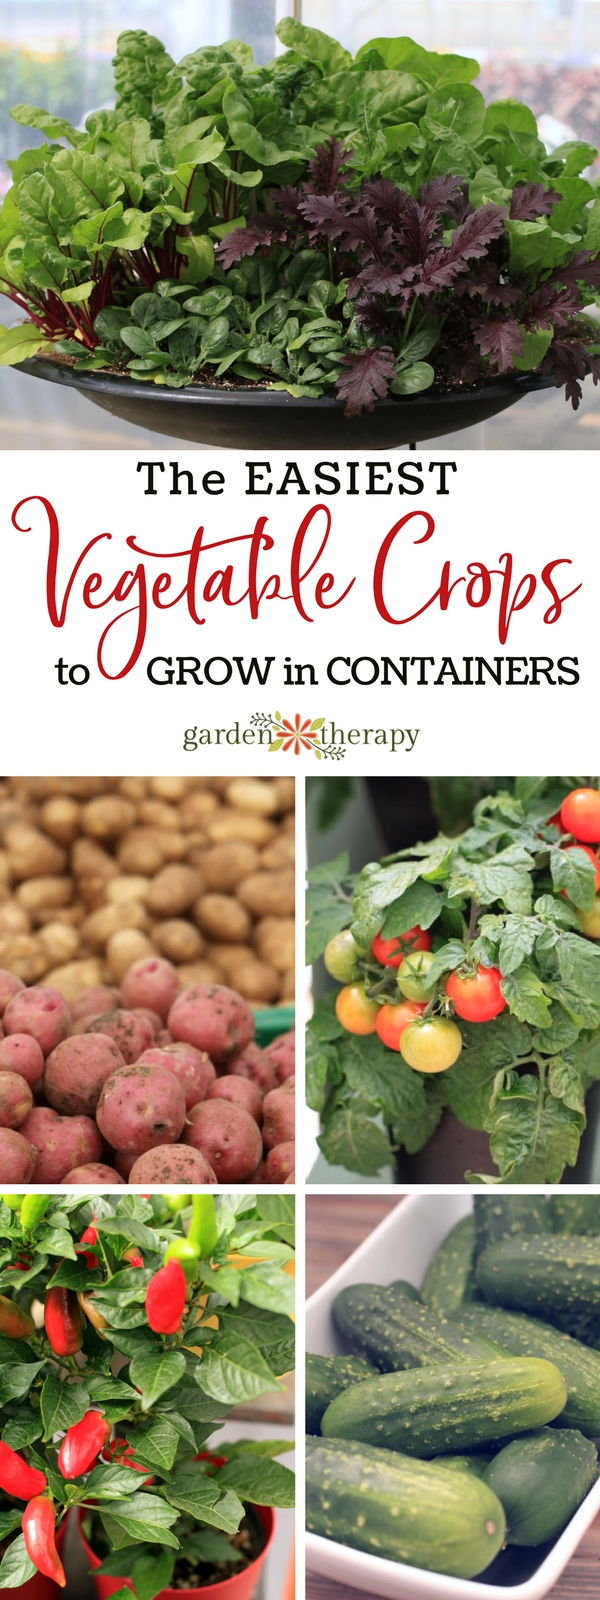 Vegetables that you can grow in containers, including lettuce, potatoes, tomatoes, peppers, and cucumbers